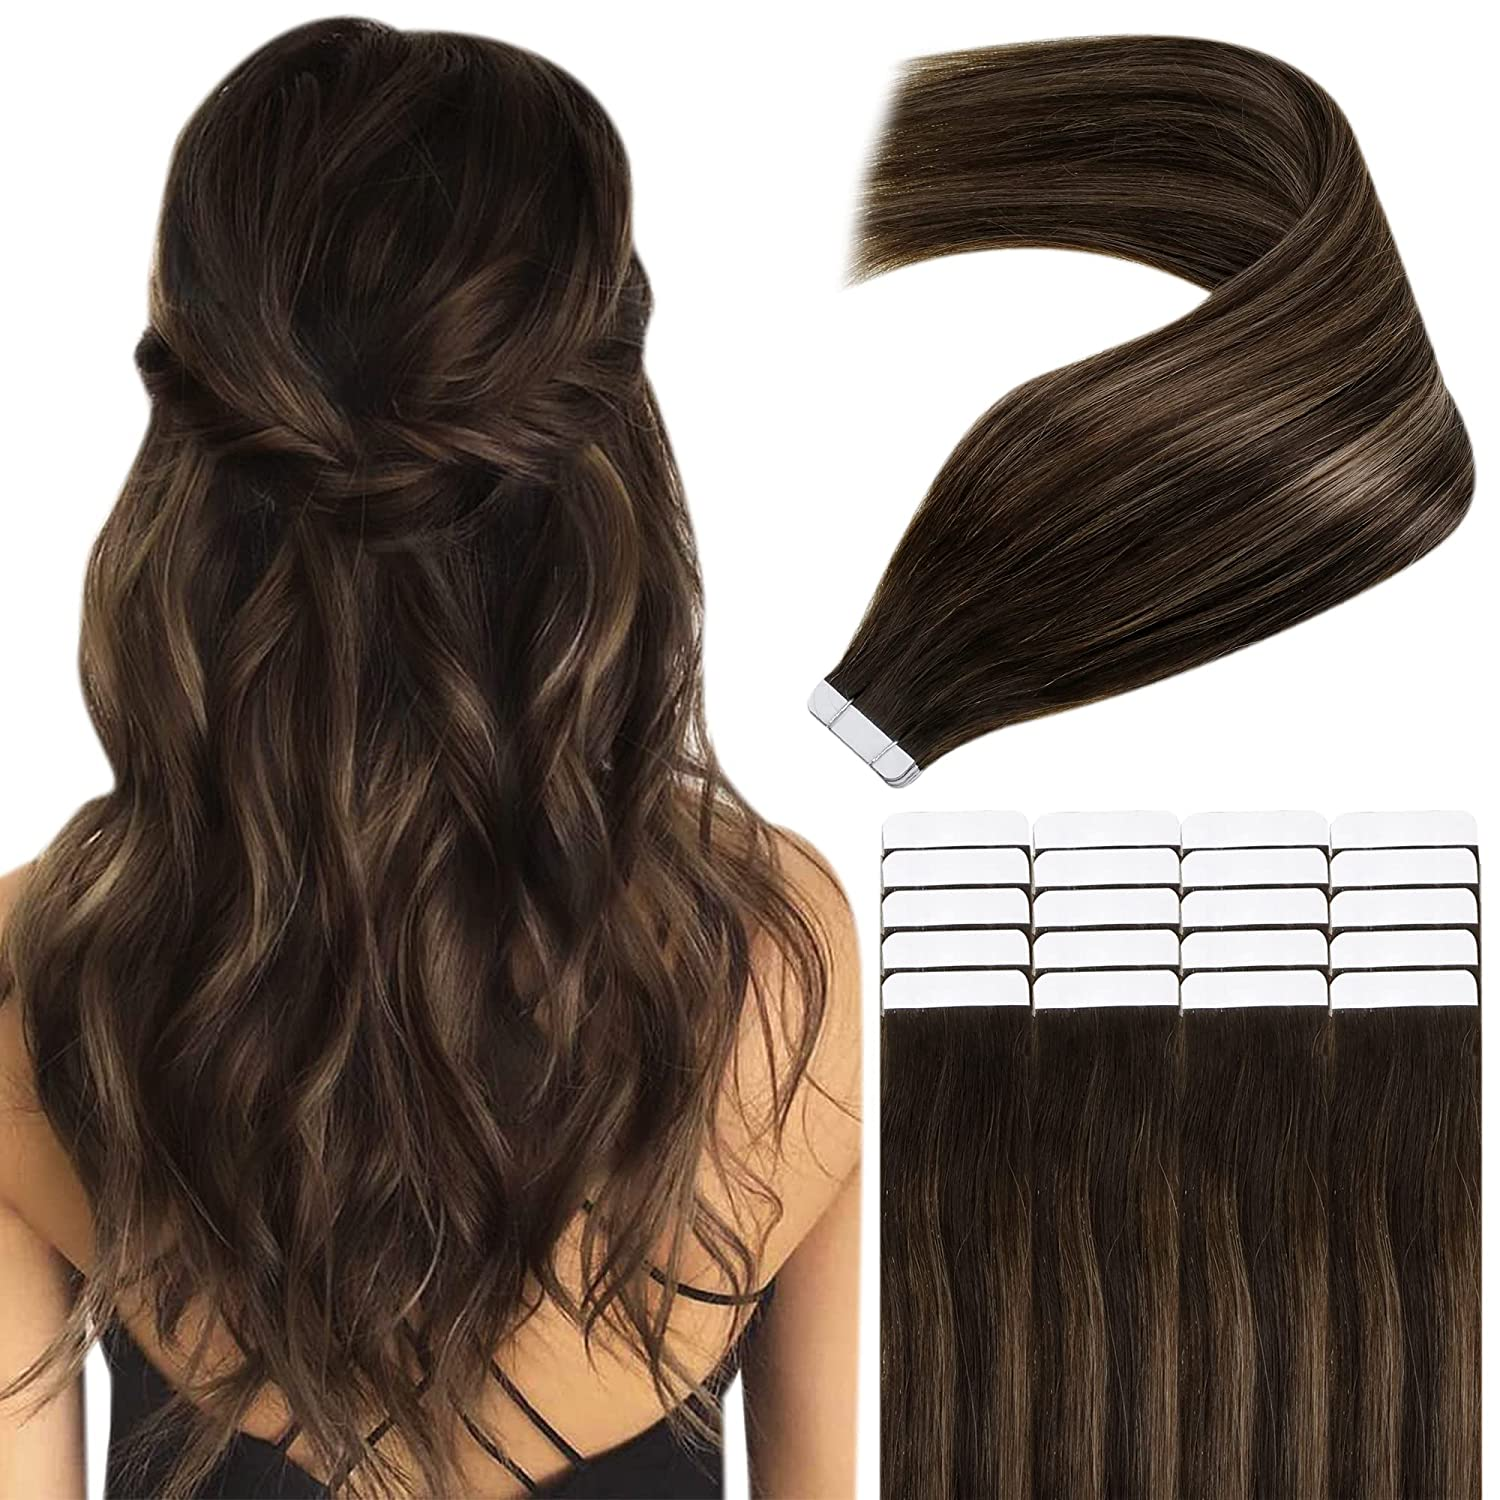 Easyouth Tape El Paso Mall New Orleans Mall in Human Hair Extensions Women Darkest Color for B